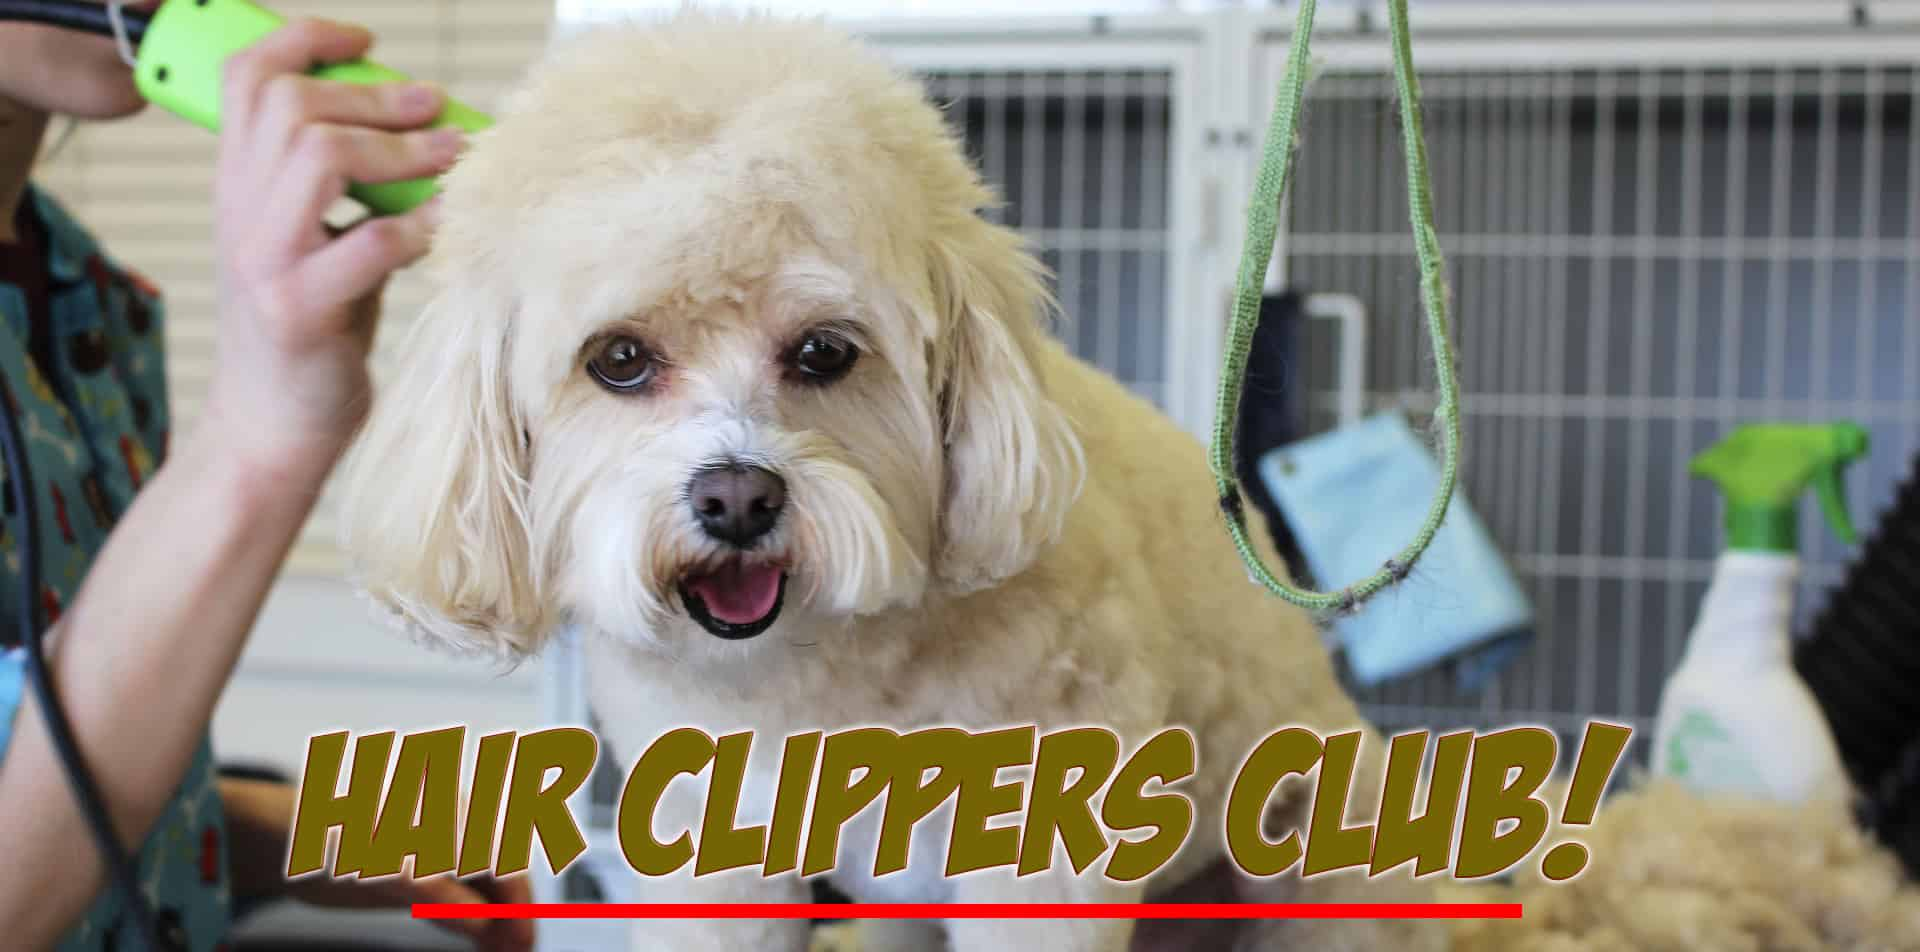 Hair Clippers Club